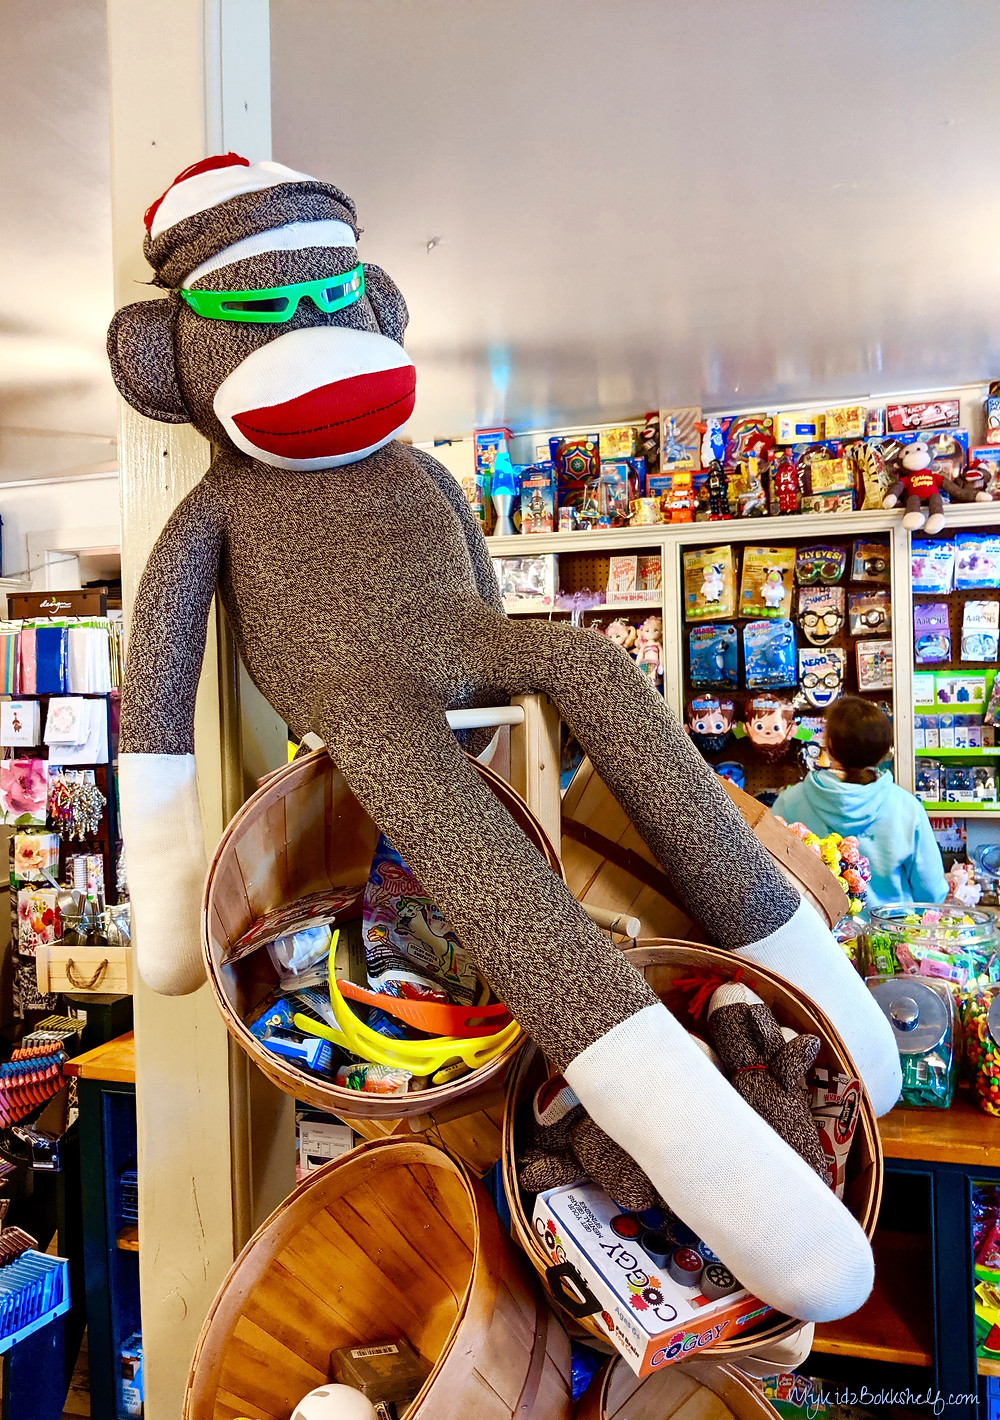 Sock-Monkey-Alley's-General-Store-Seas-the-Day-at-Martha's-Vineyard-trip